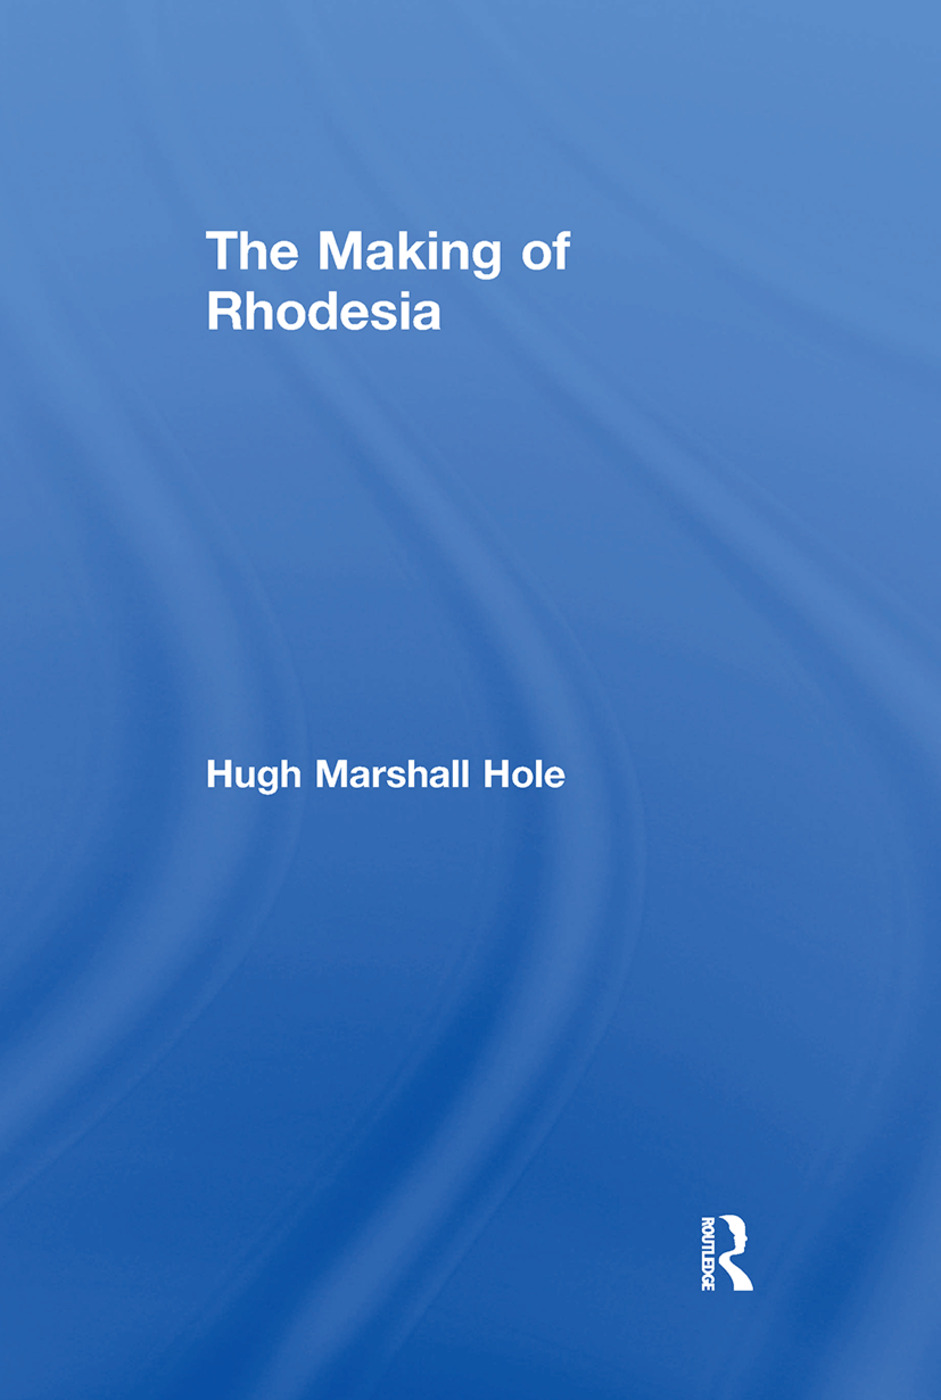 The Making of Rhodesia